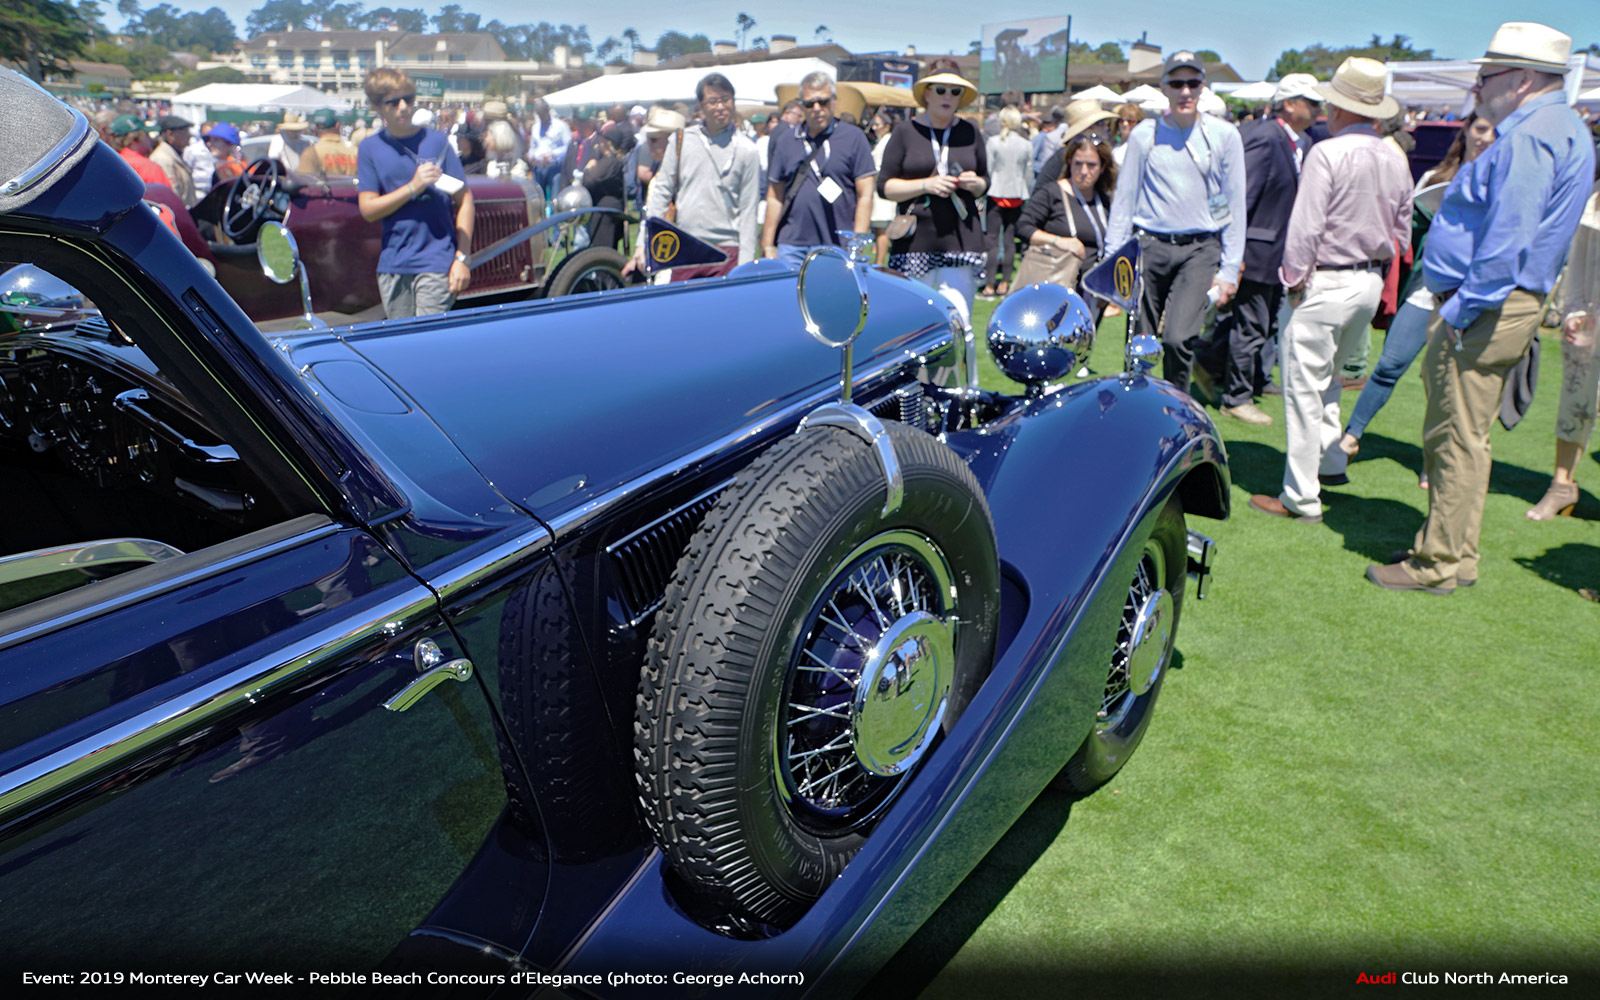 Gallery: Pebble Beach Concours d'Elegance at Monterey Car Week 2019